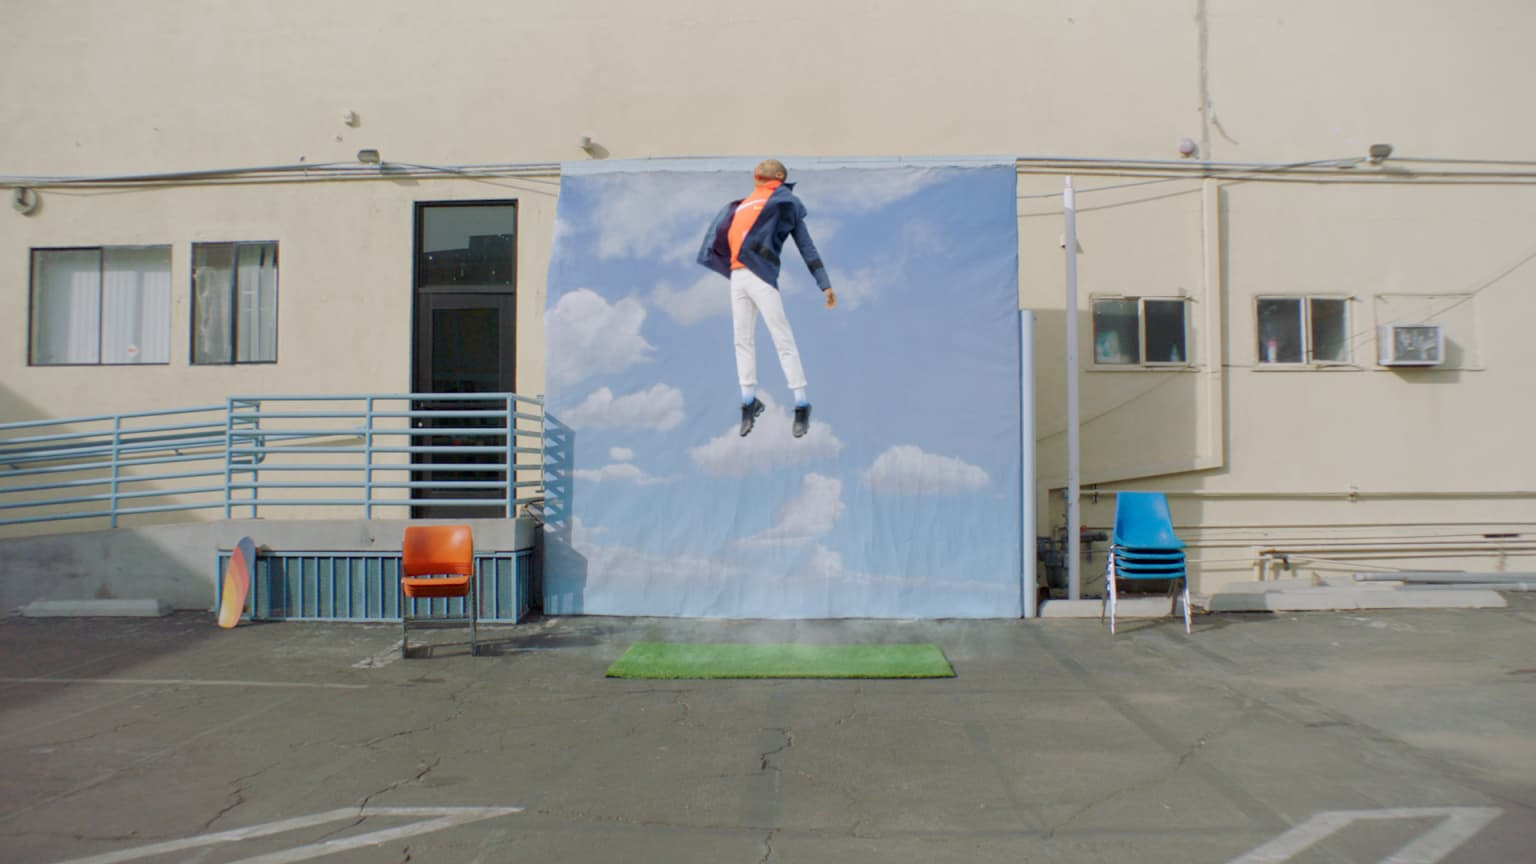 Footlocker / Nike - Discover your Air